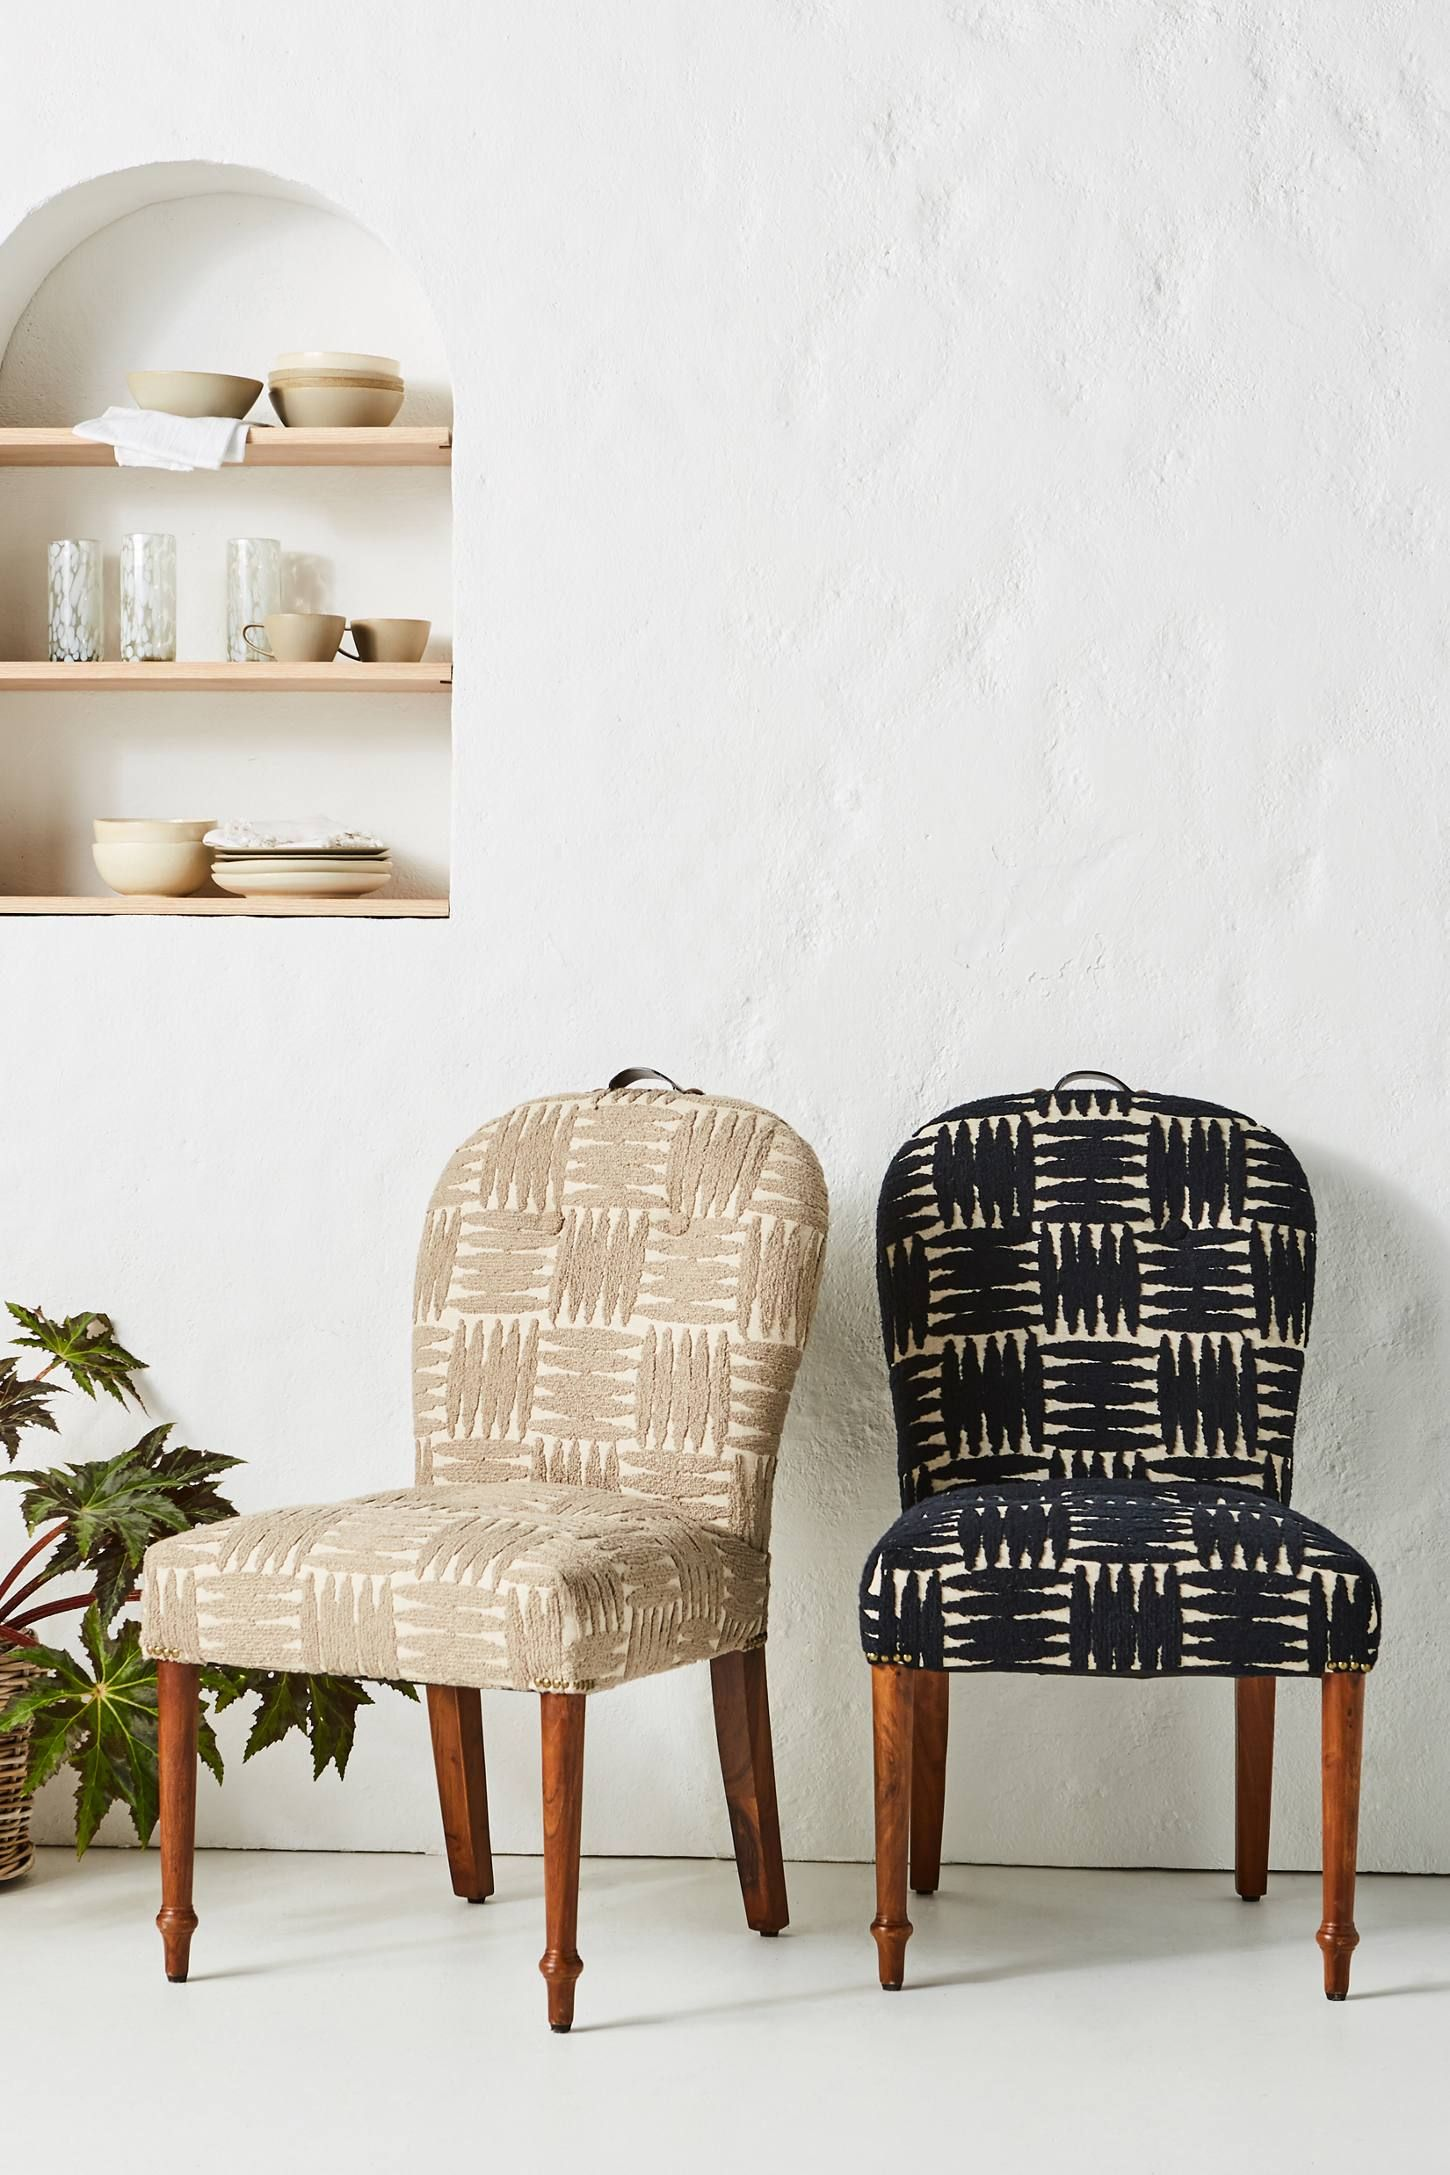 Mumbai Dining Chair Dining Chairs Moroccan Decor Living Room